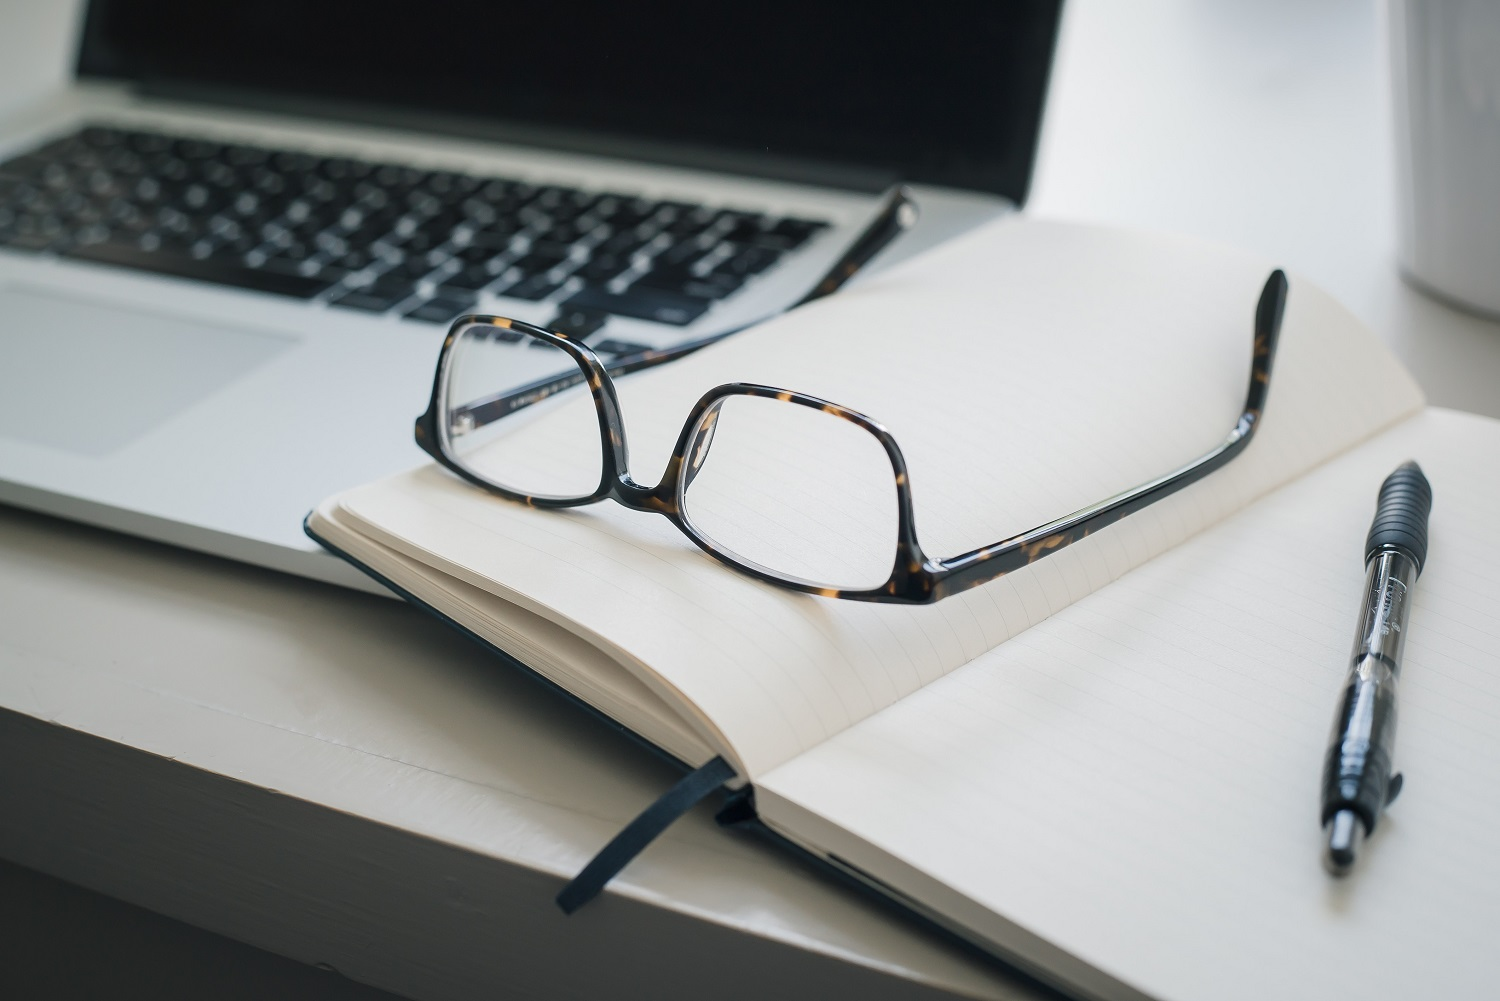 Image of a laptop blurred in the background with an open book and a pair of horn rimmed glasses sitting on the book.